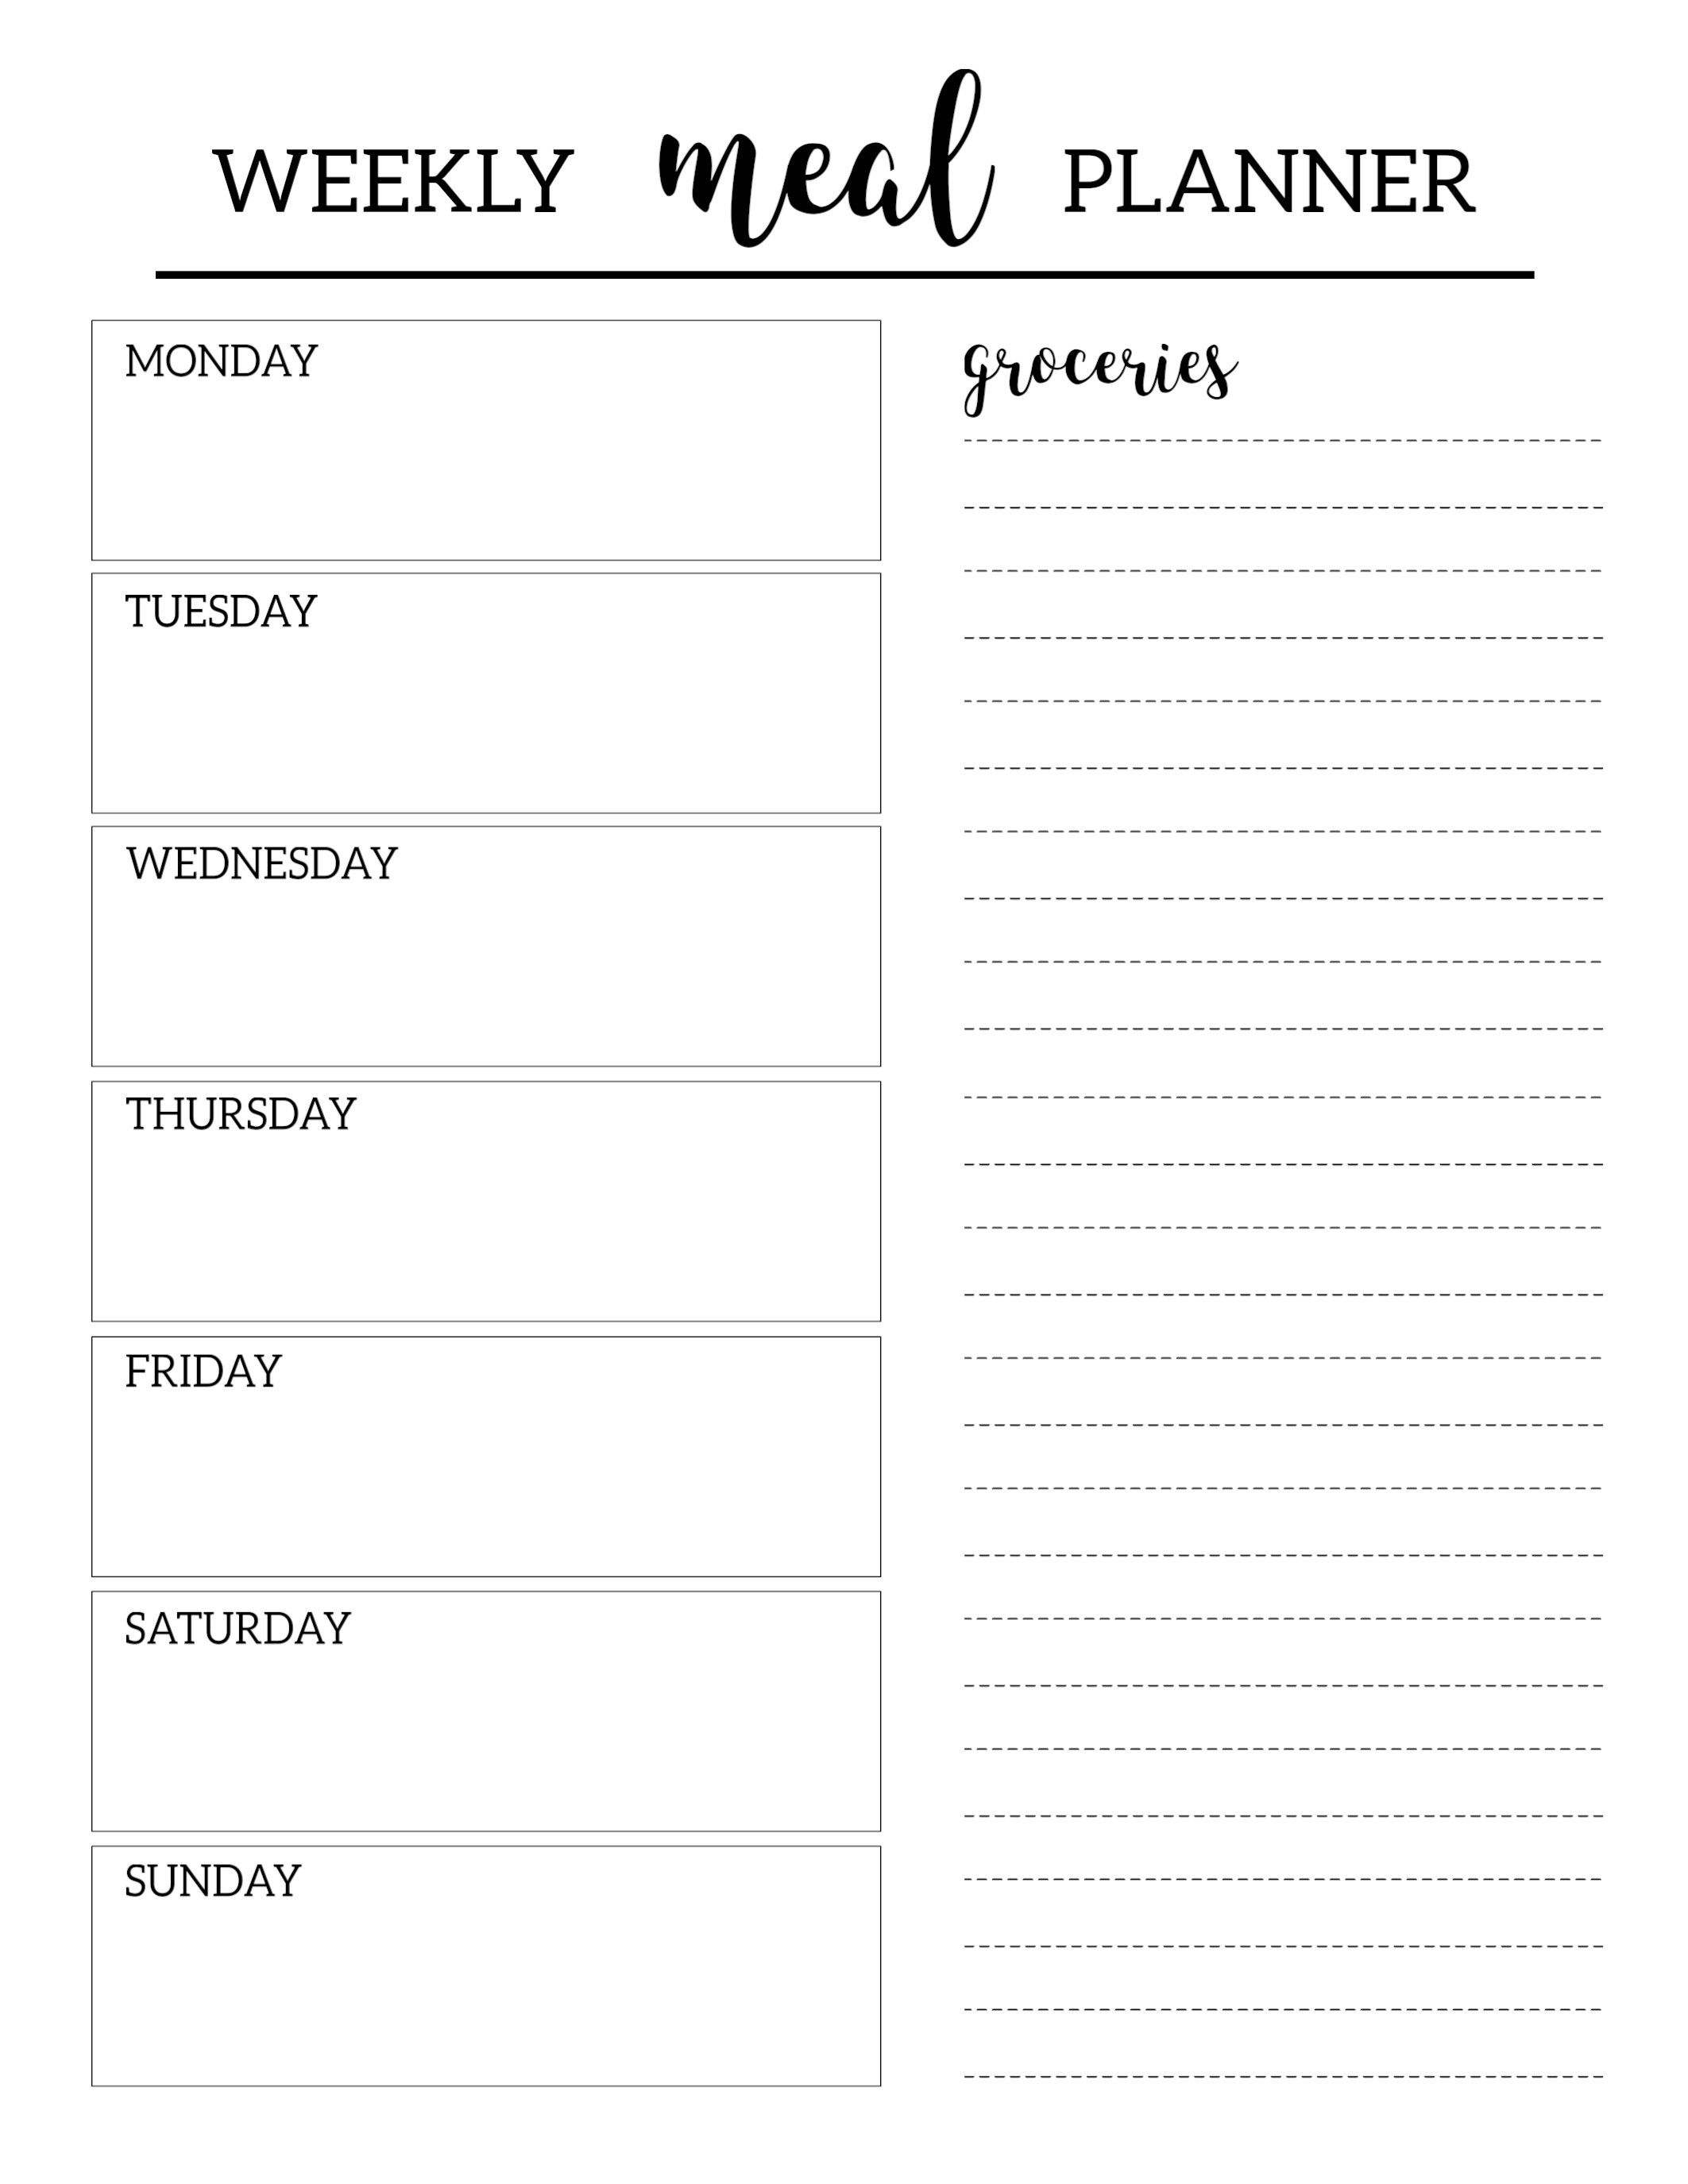 Free Printable Meal Planner Template Weekly Meal Planner